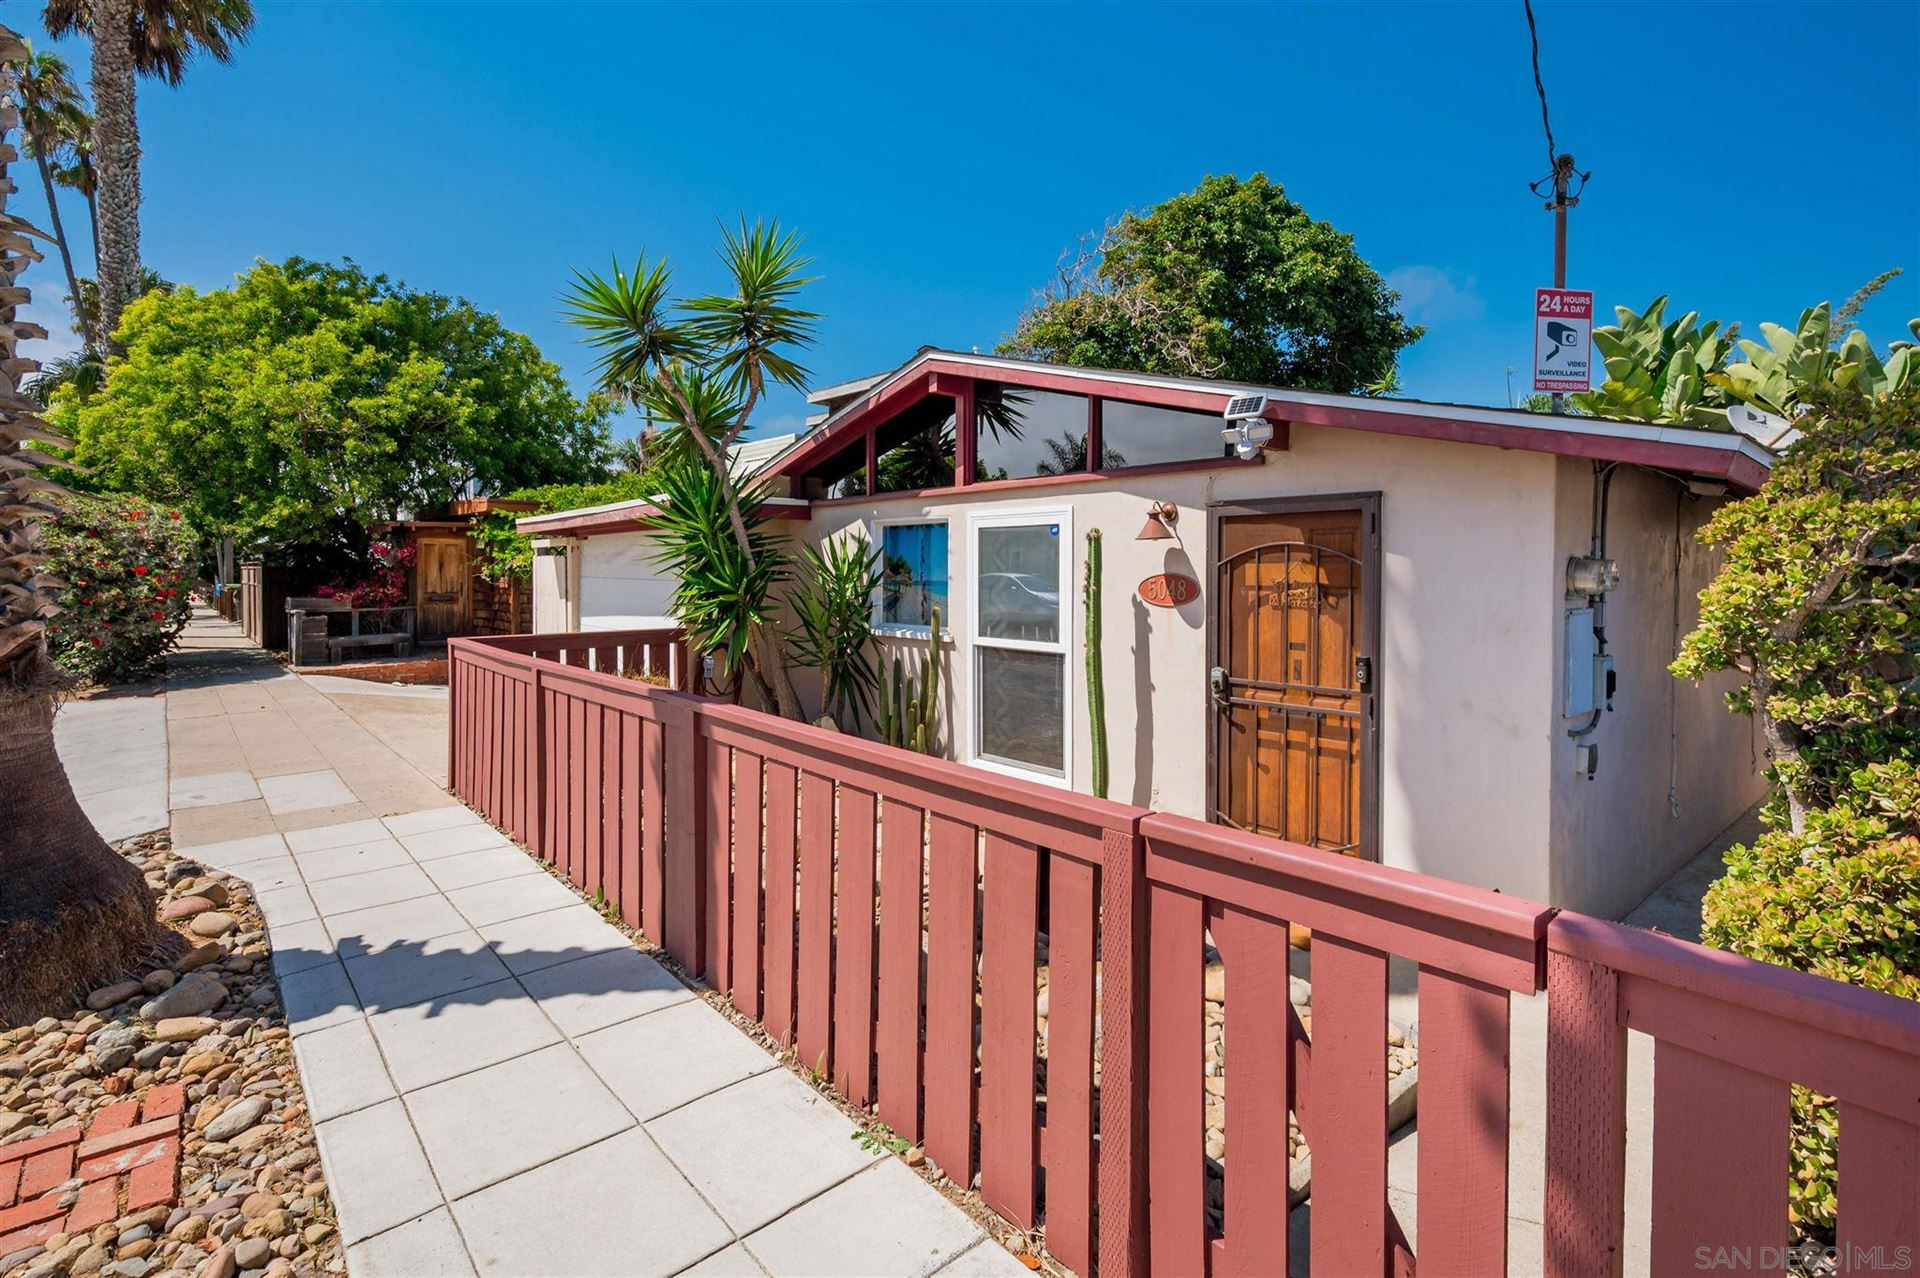 Photo of 5046-48 LONG BRANCH AVE., SAN DIEGO, CA 92107 (MLS # 210021494)